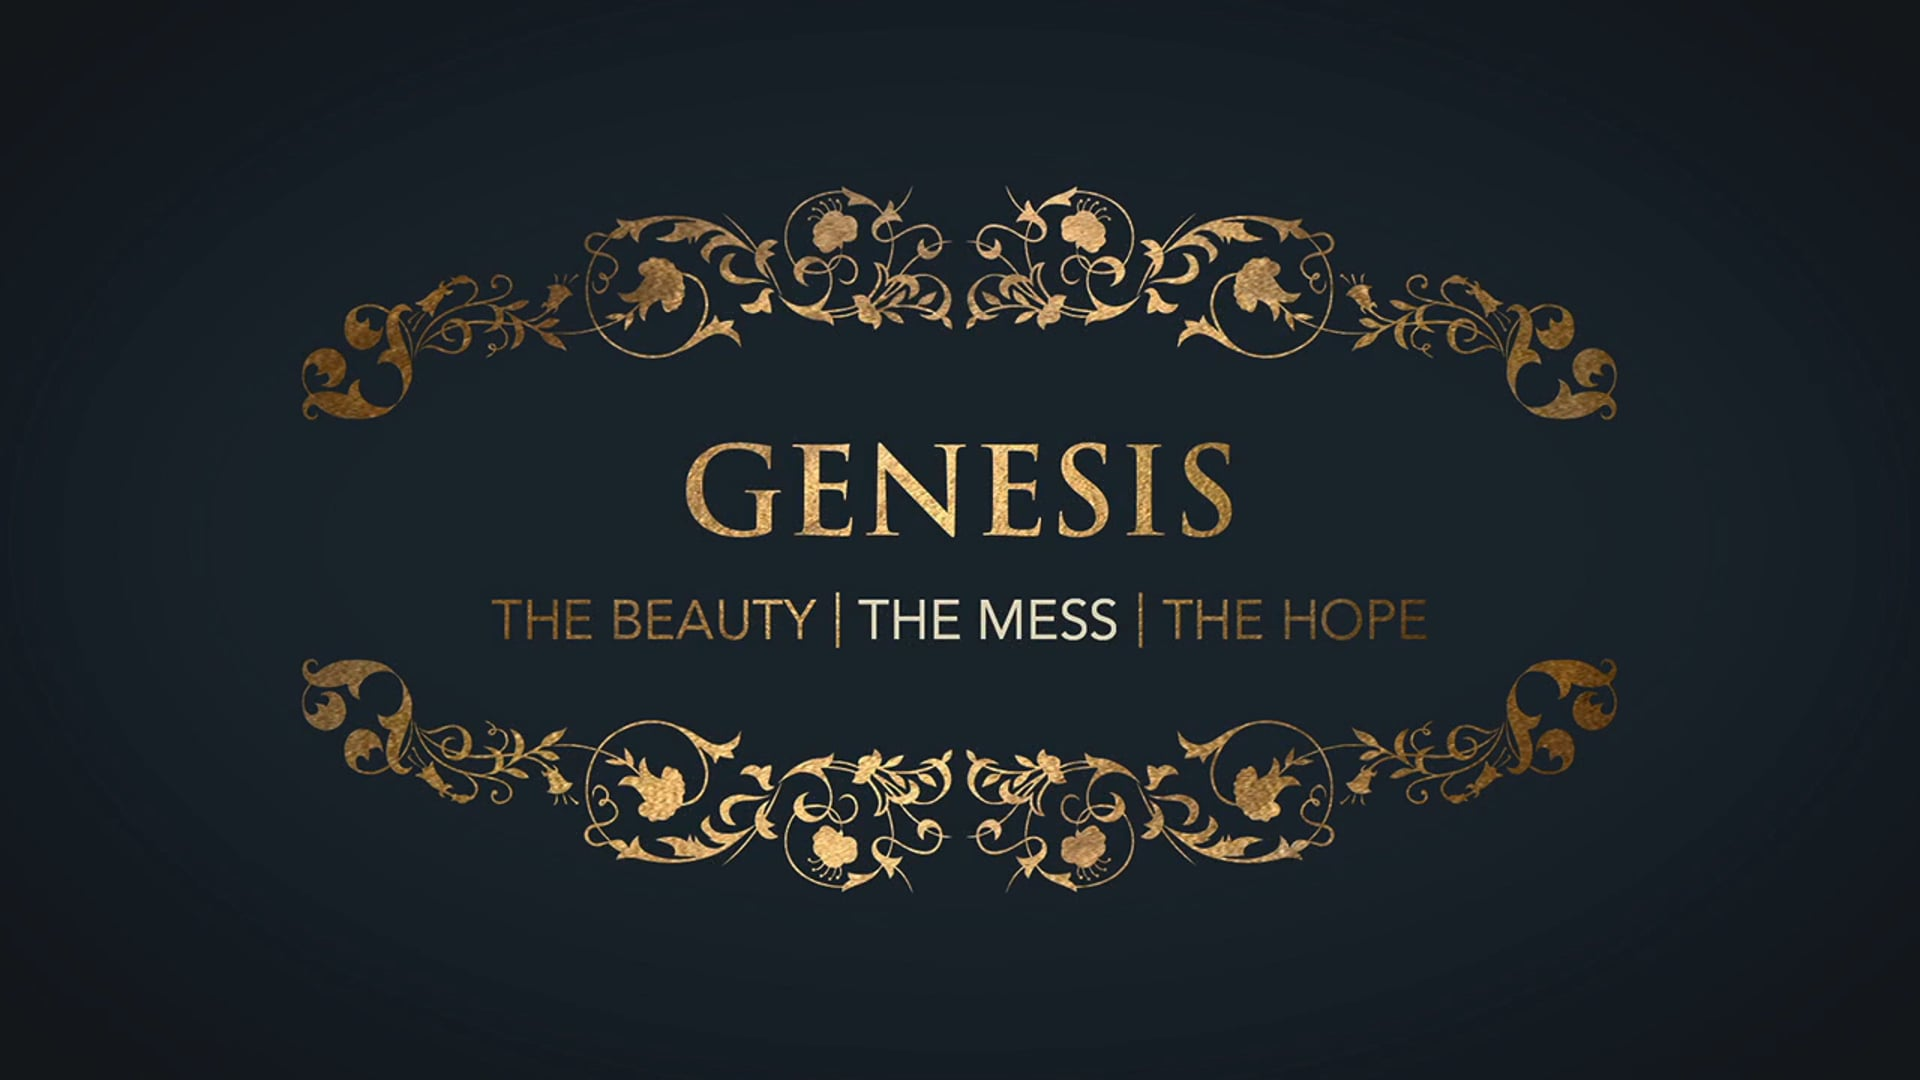 Week 6: Genesis: The Mess and the Hope